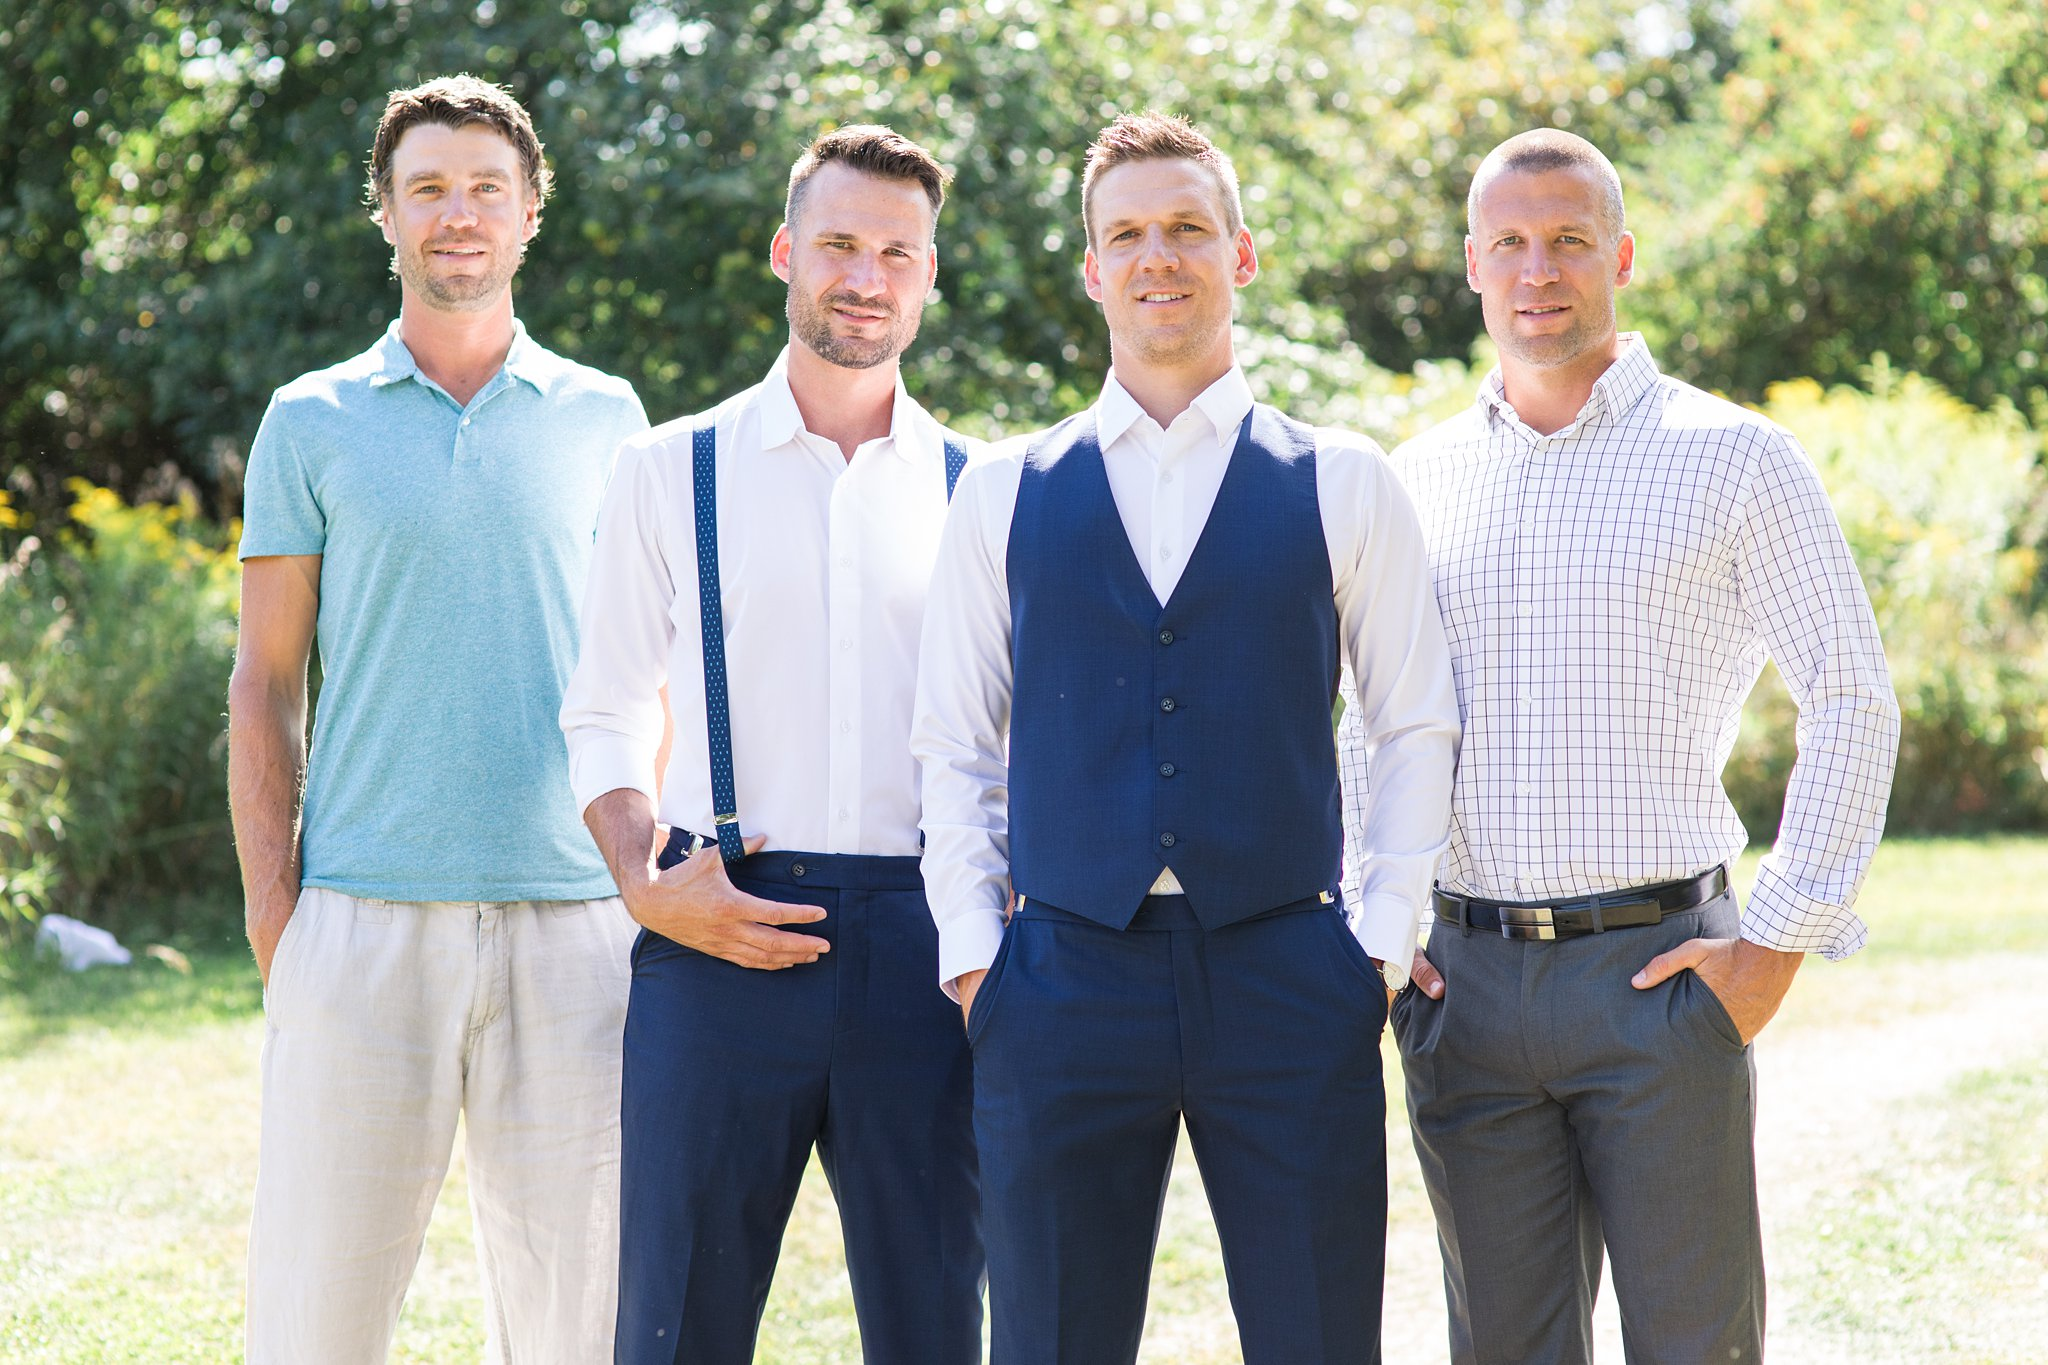 Family photo, brothers, Private Estate Wedding Photos, Amy Pinder Photography